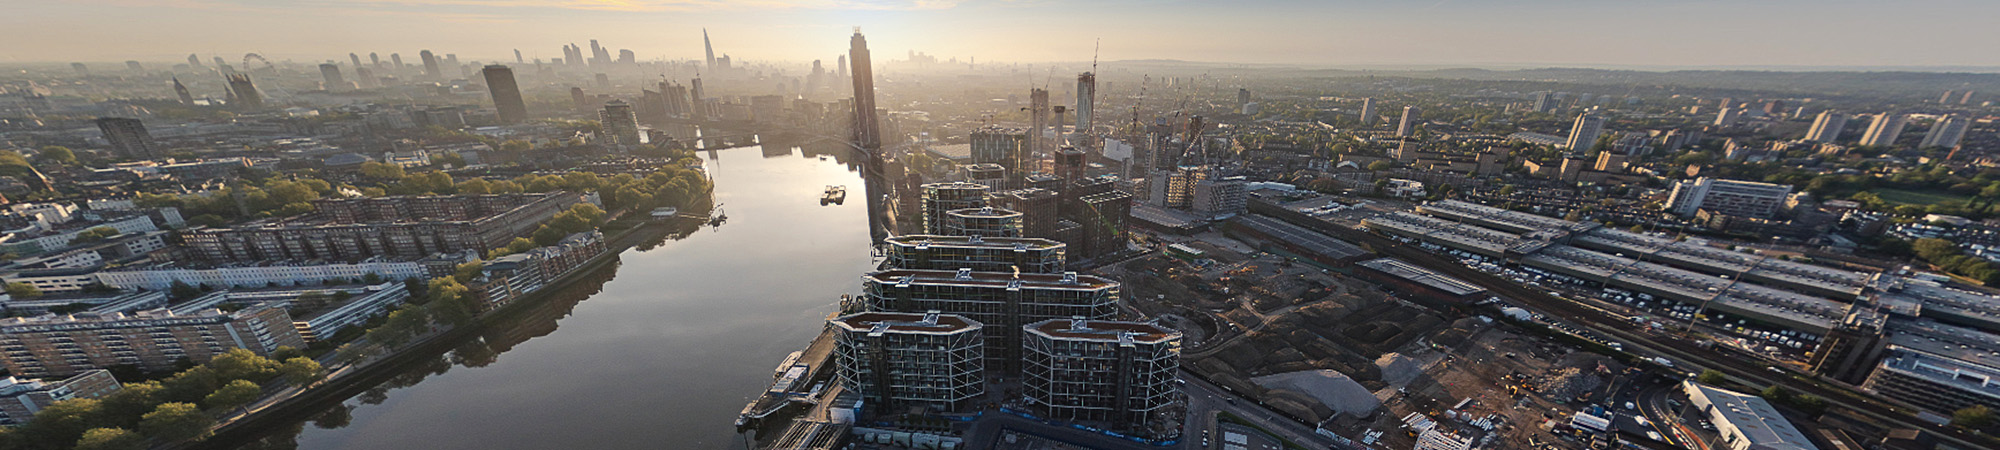 Drone shot looking across London towards the financial district